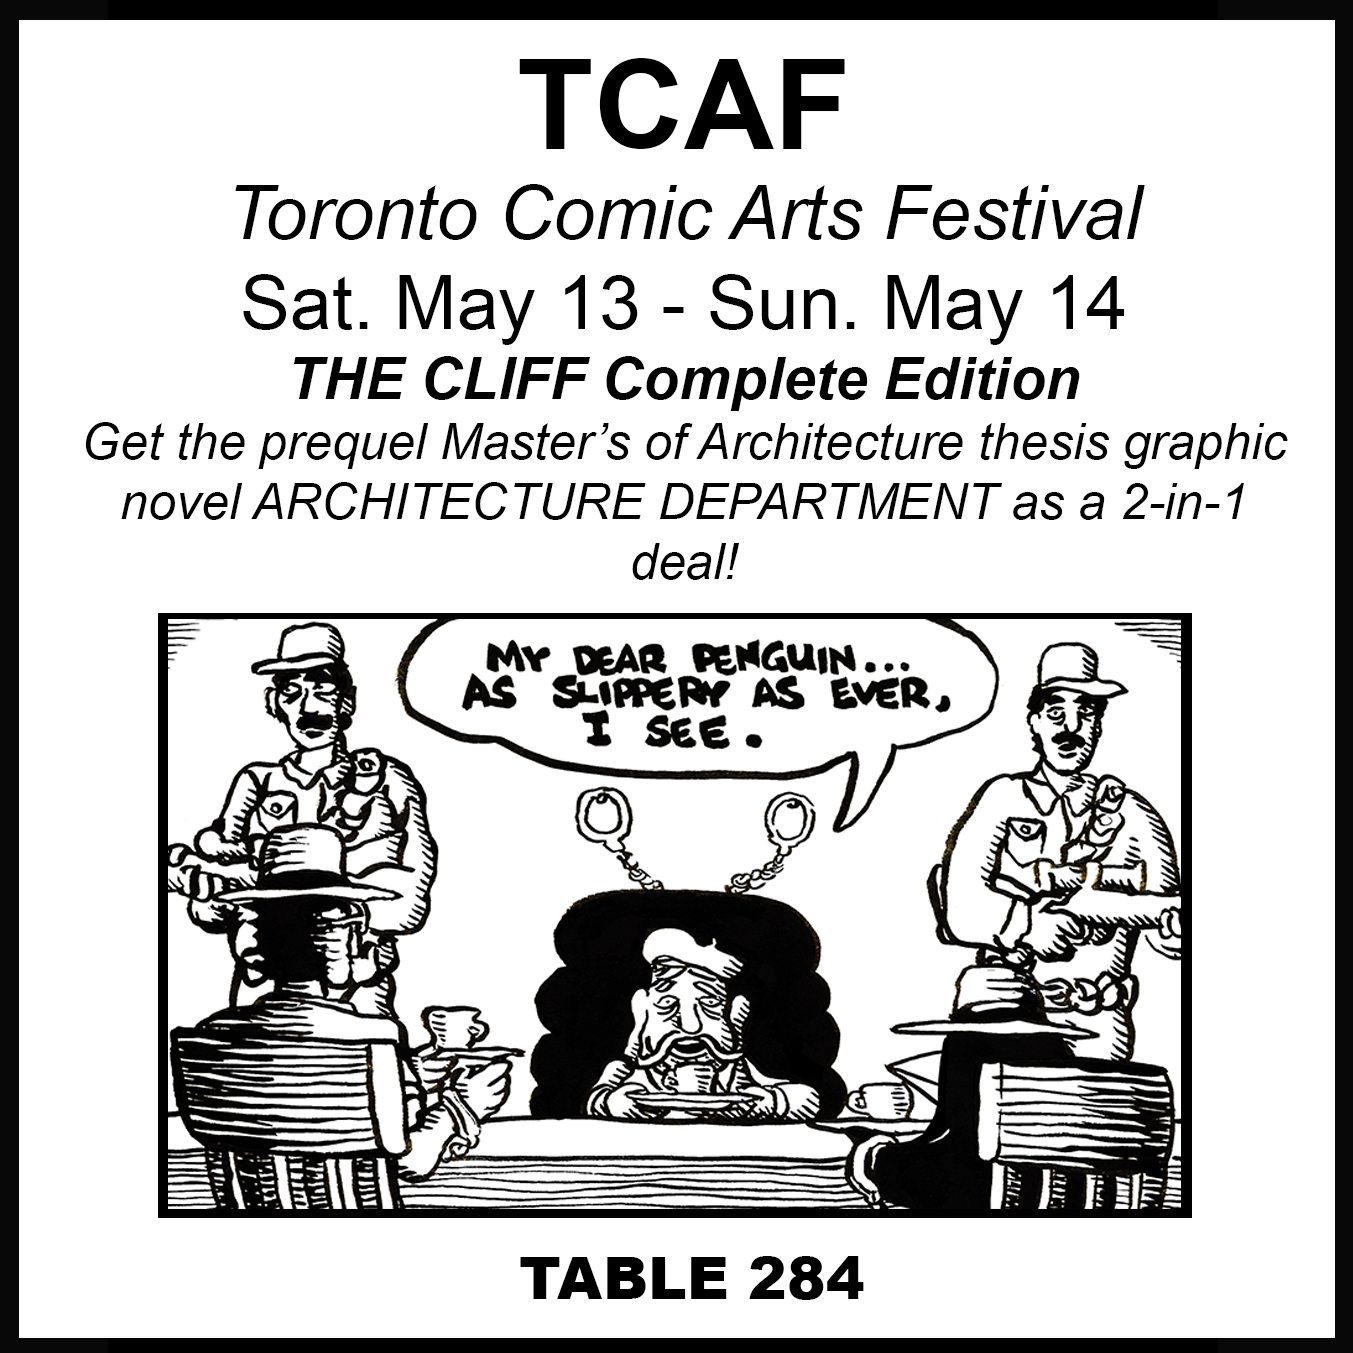 Ambient Zero Comic Book blog: TCAF this weekend